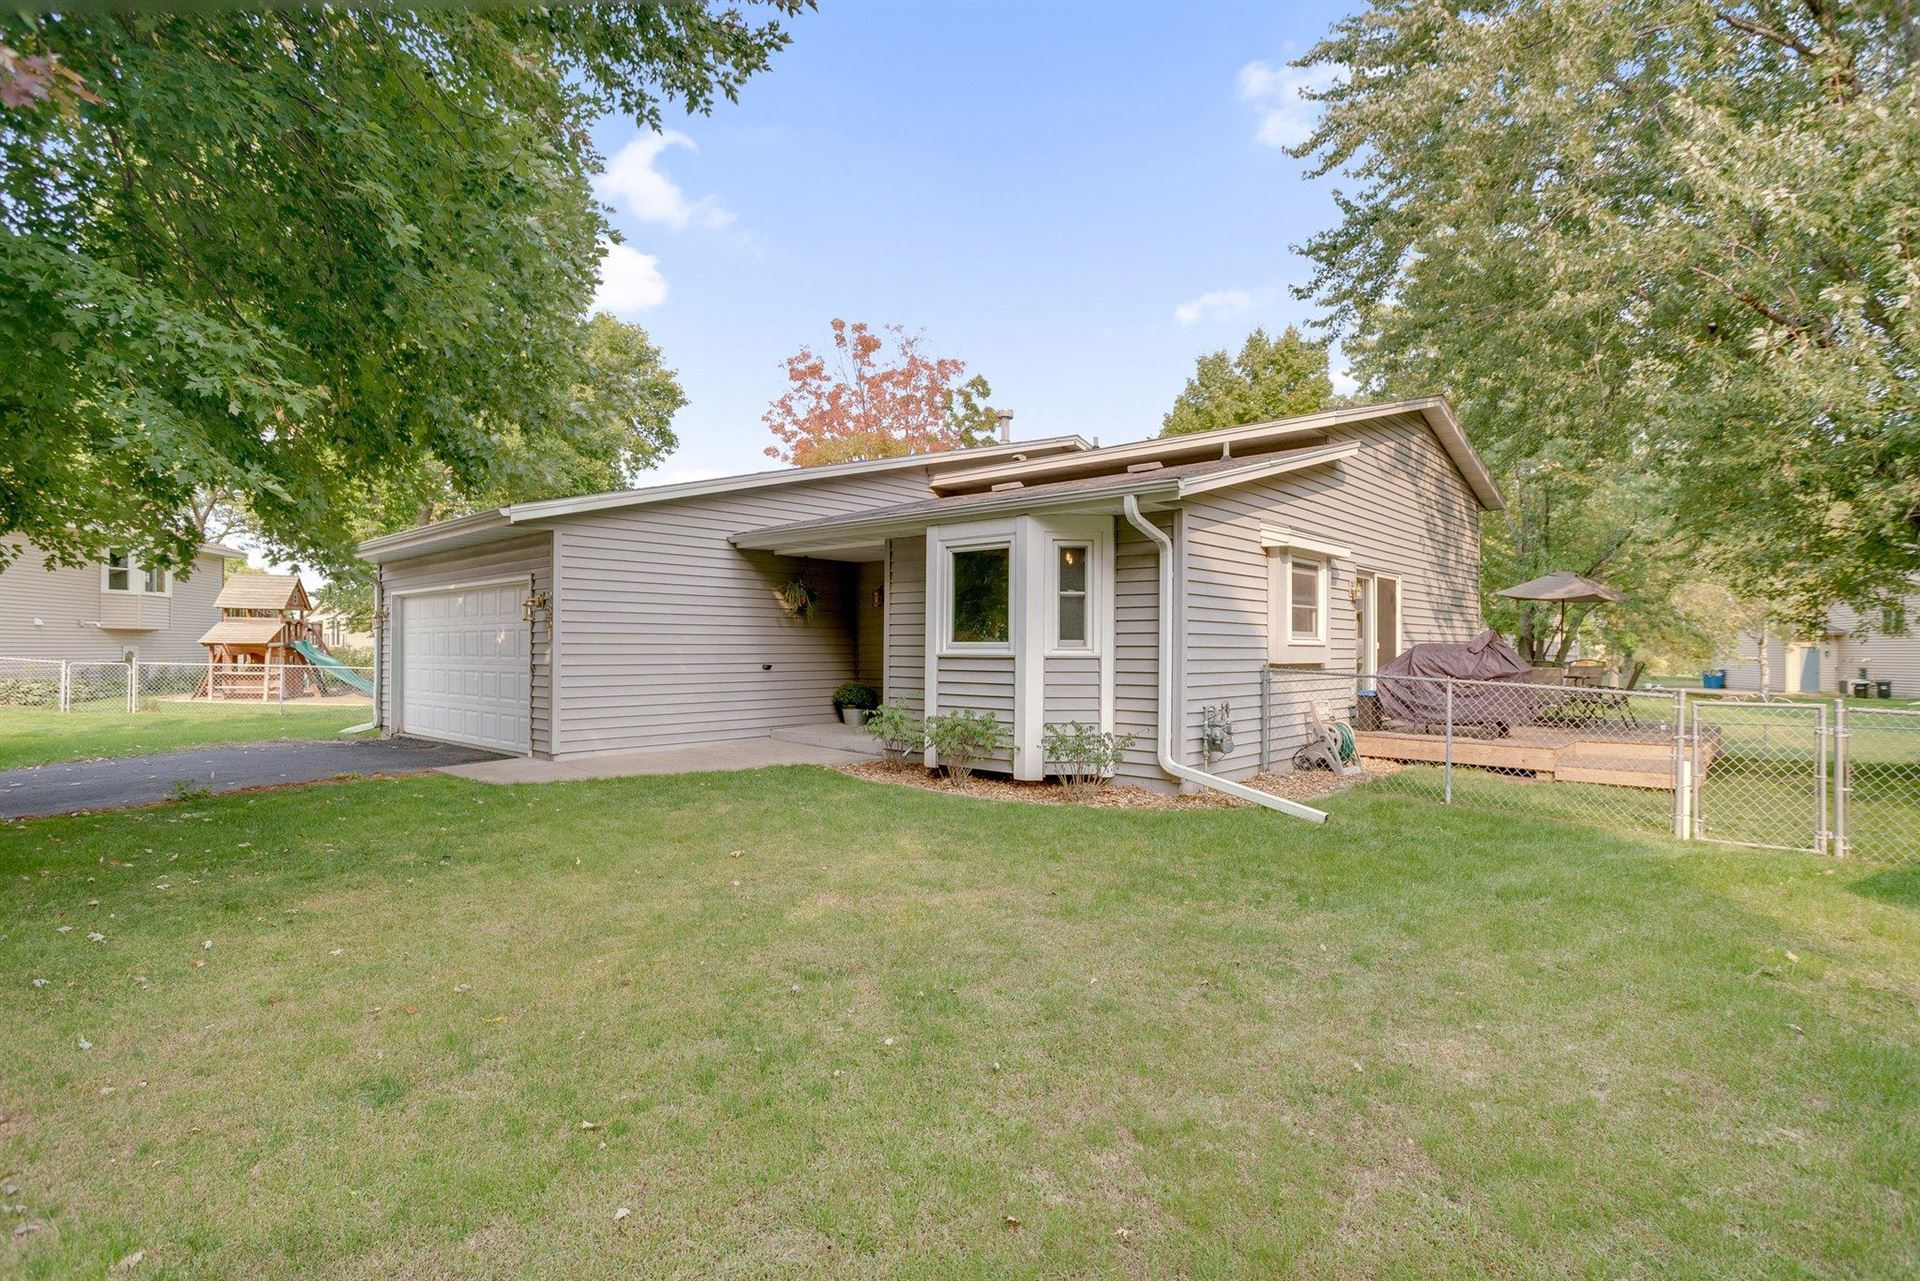 9851 94th Place N, Maple Grove, MN 55369 - MLS#: 5659709